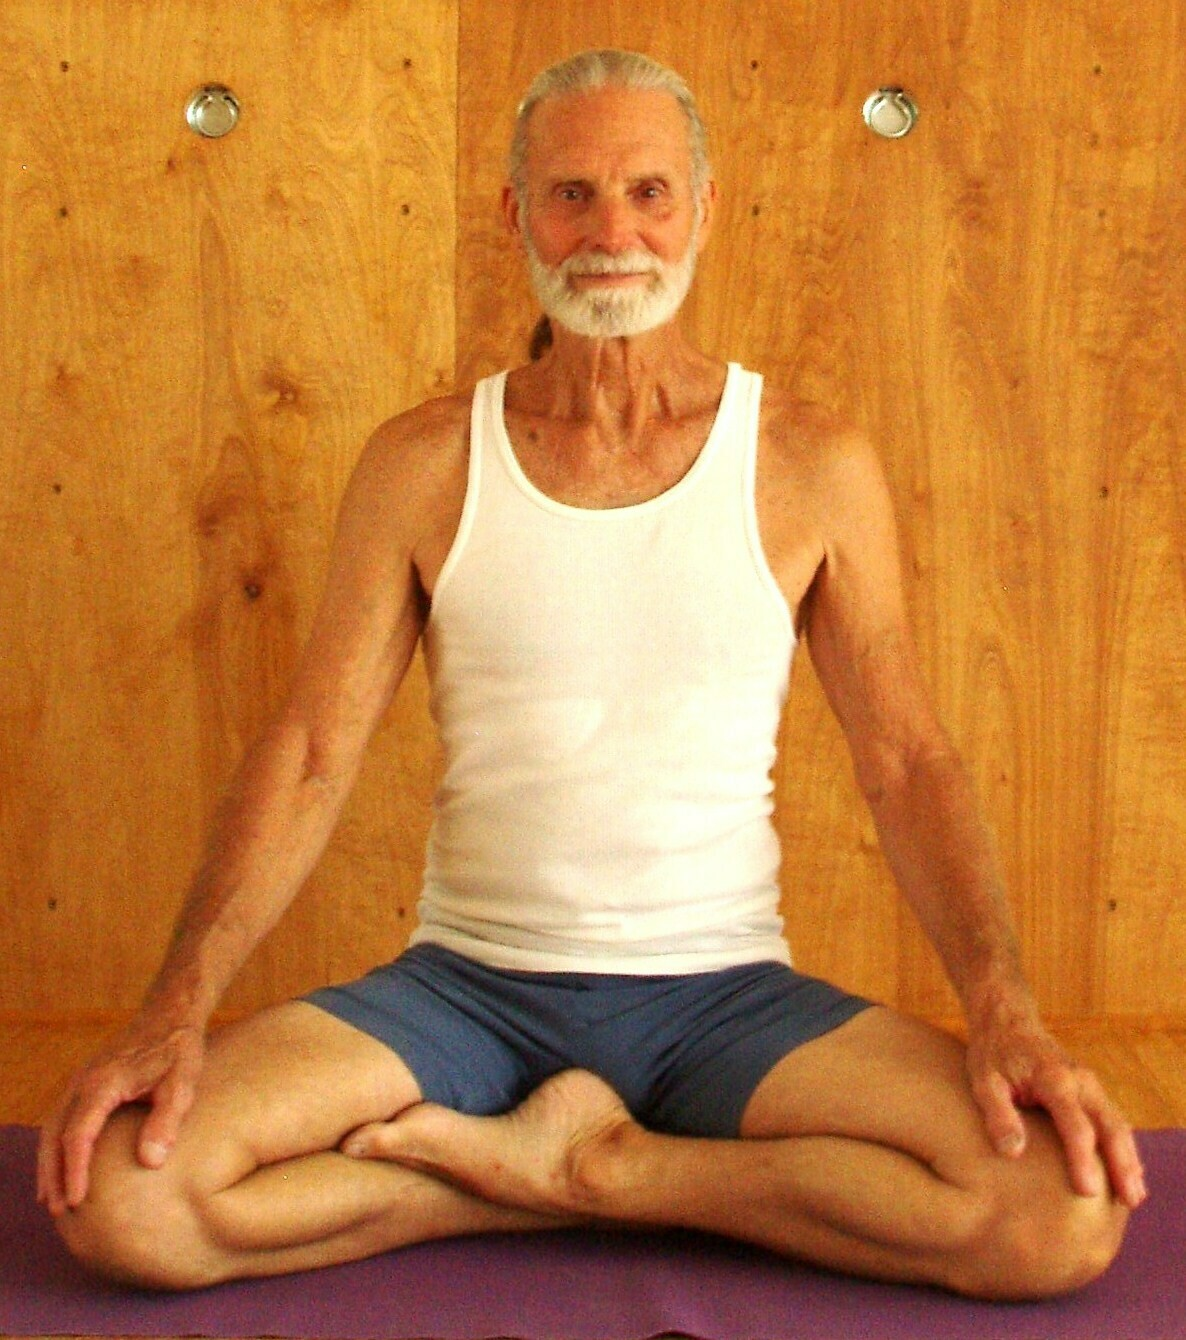 Saturday (9:00-10:00 AM) Beginners Yoga in the House Studio with David